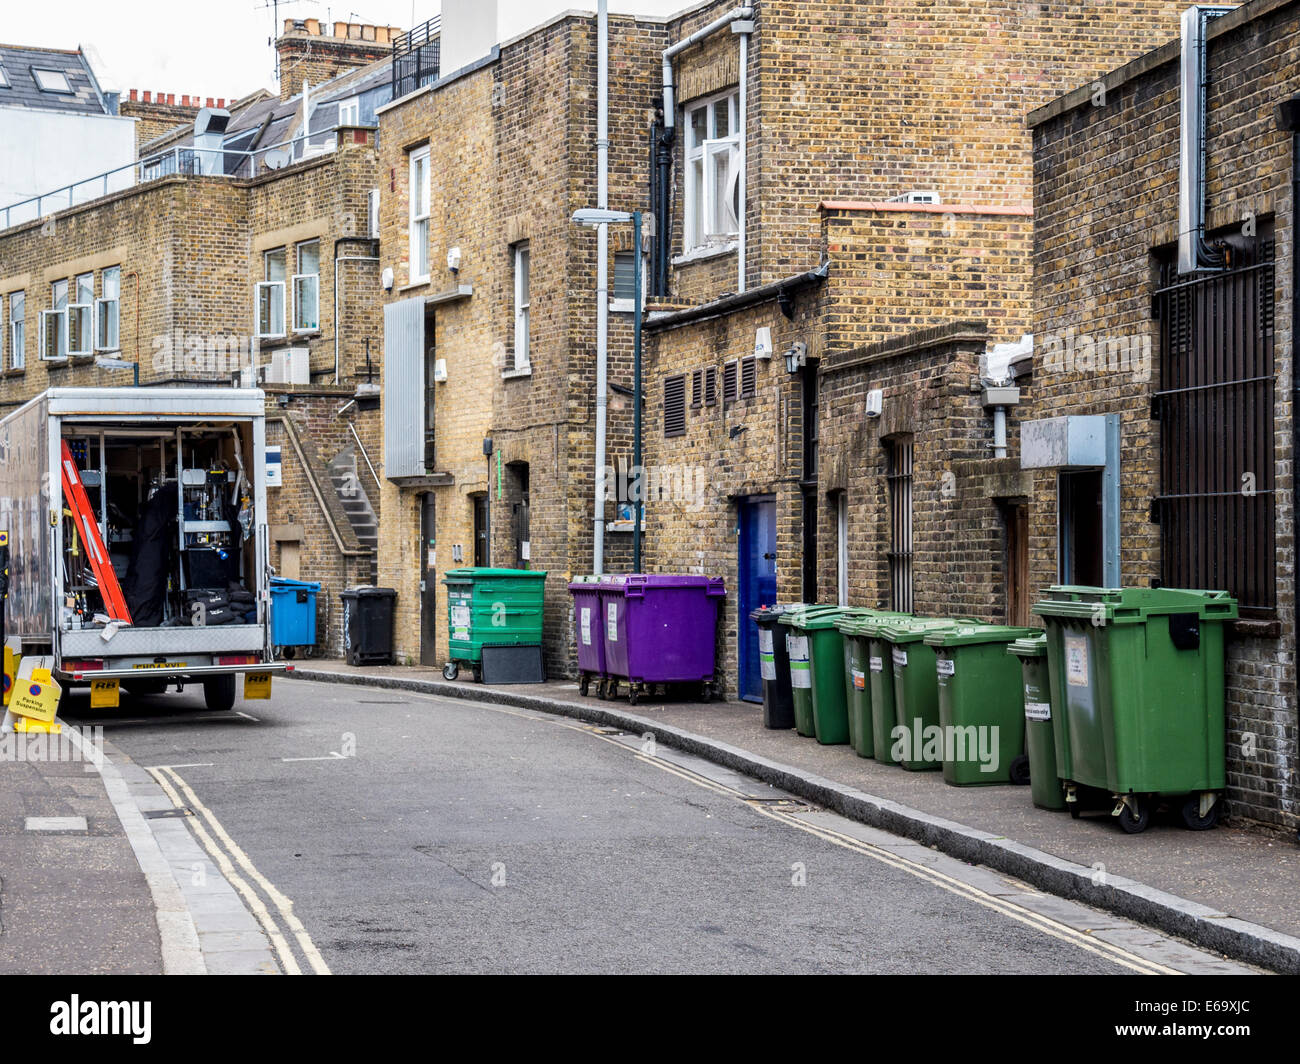 Recyling bins and trash cans in street , Quadrant road, Richmond upon Thames, Surrey, London, UK - Stock Image